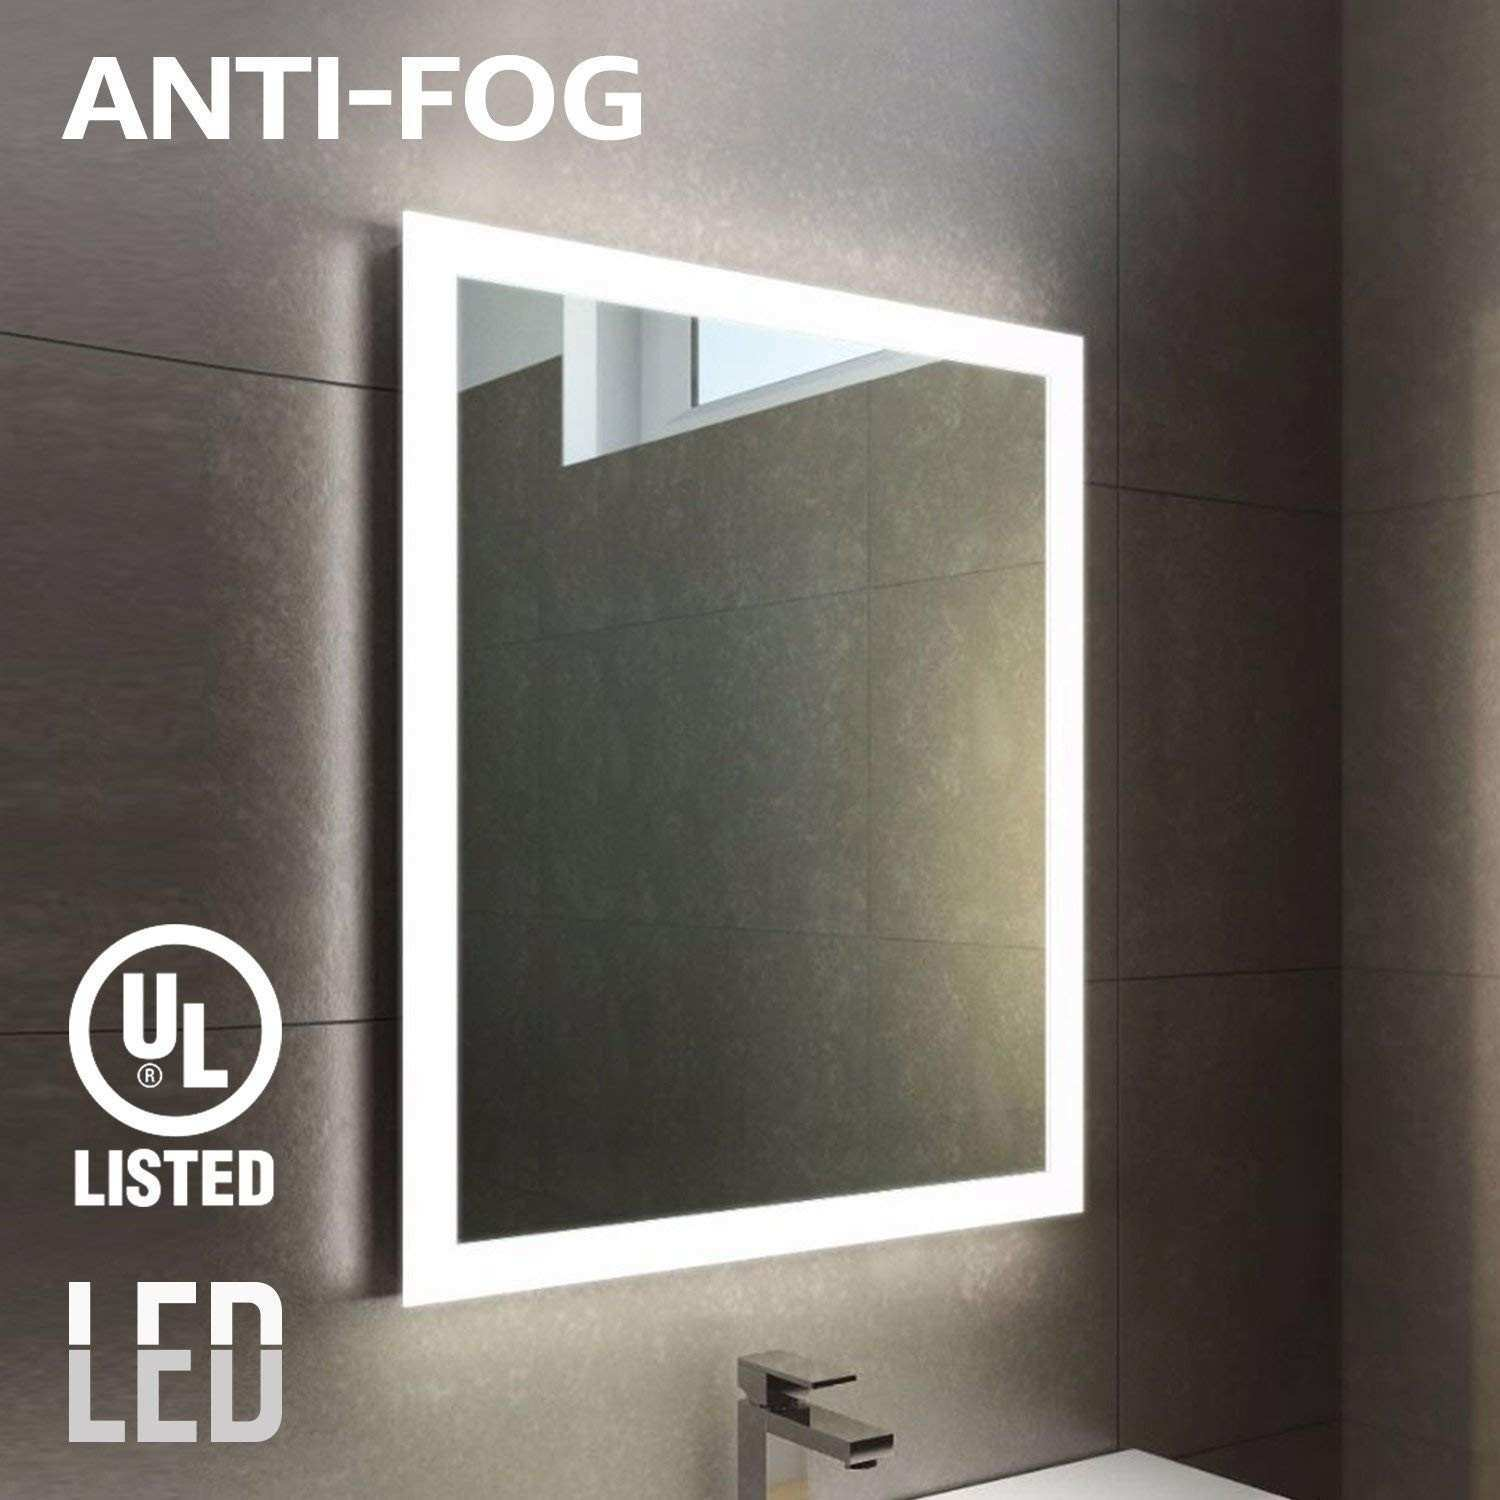 Amazon Fogless LED Lighted Makeup Mirror with Backlit Strip UL